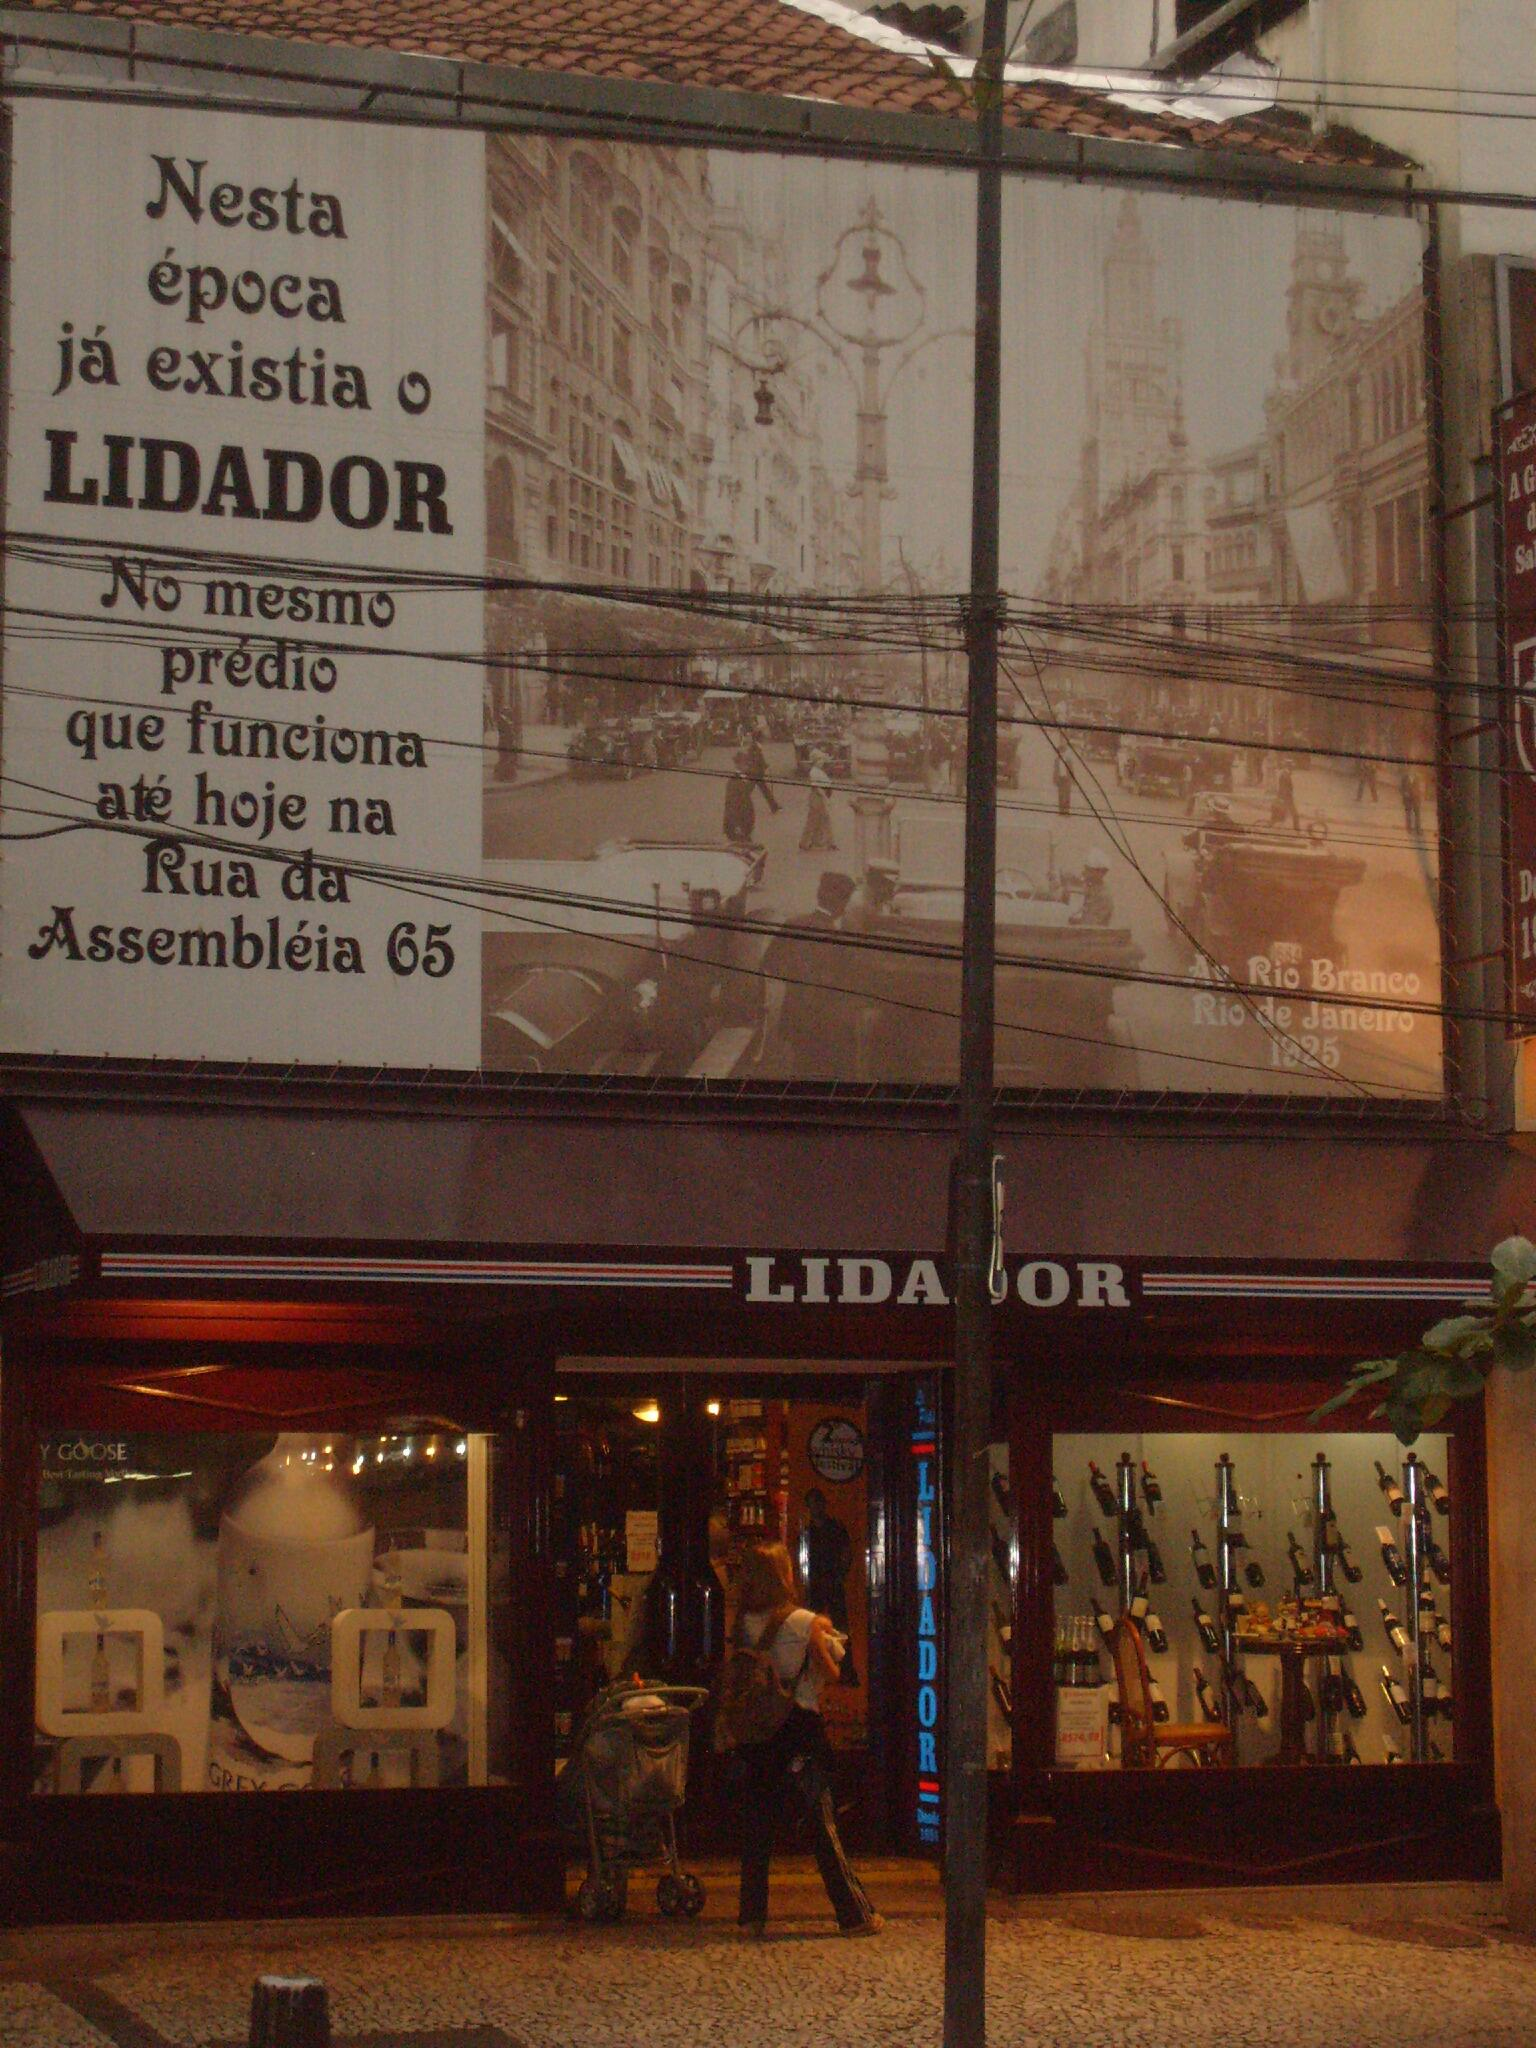 RT @EatSoccerTV: #WorldCup2014 Rio: Need a souvenir bottle of #wine? Try the global selection at the Lidador. 12+ locations! #travel http://t.co/eszdRXYj6y